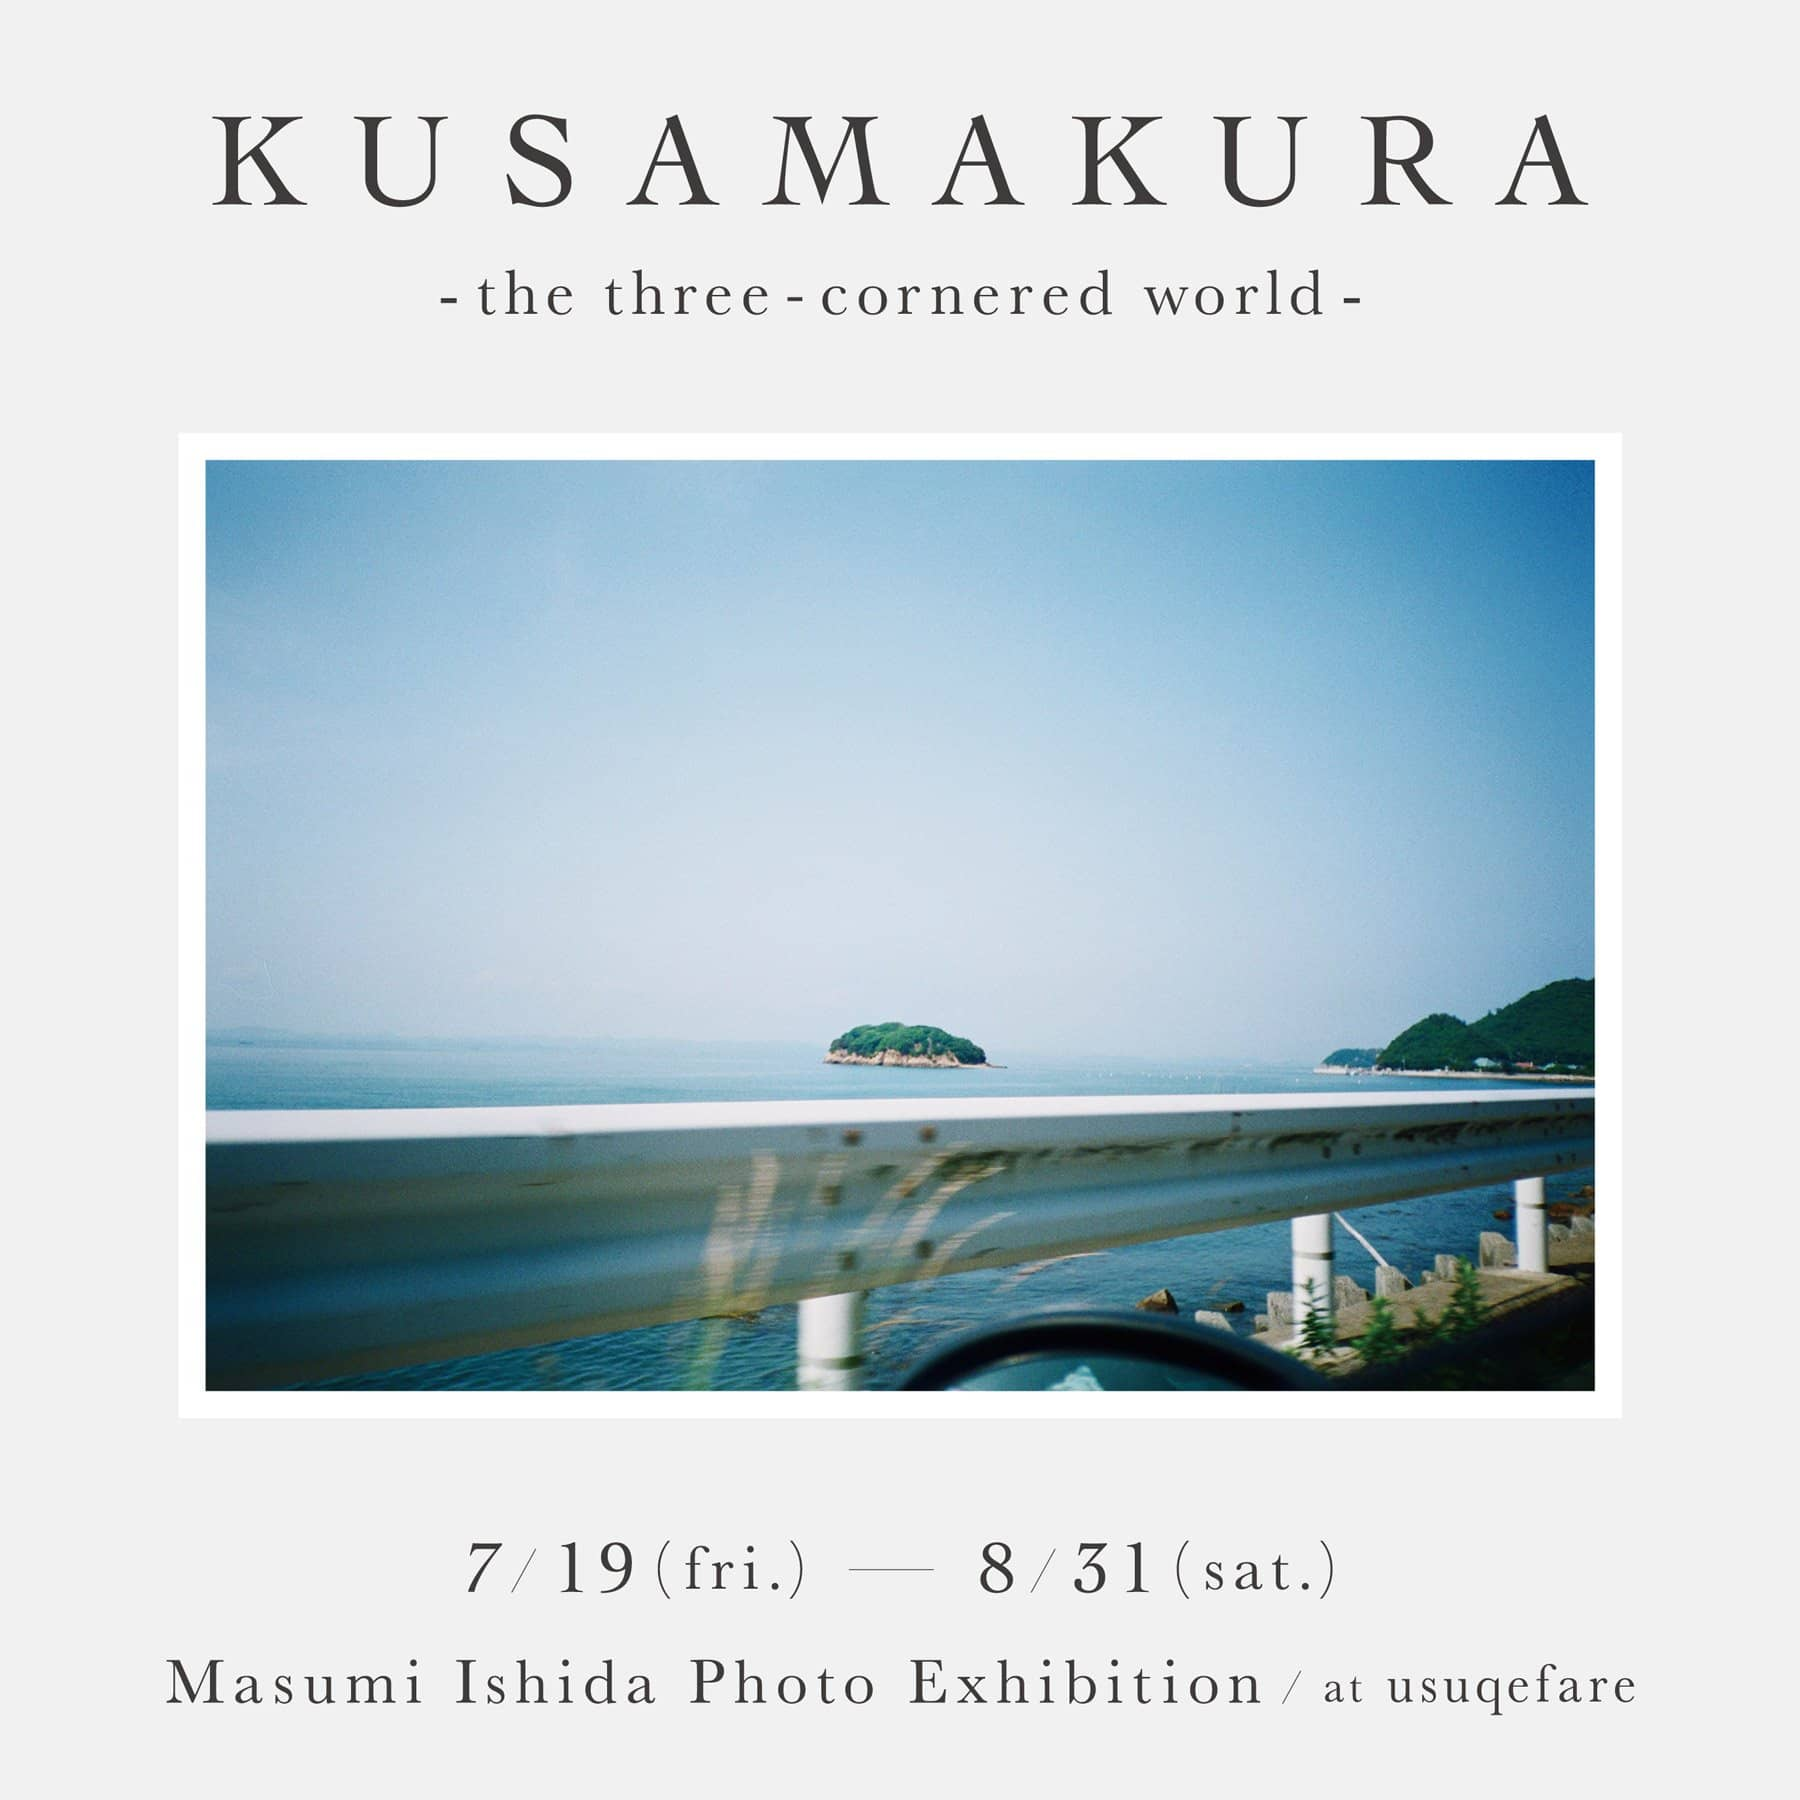 KUSAMAKURA the three-cornerd world